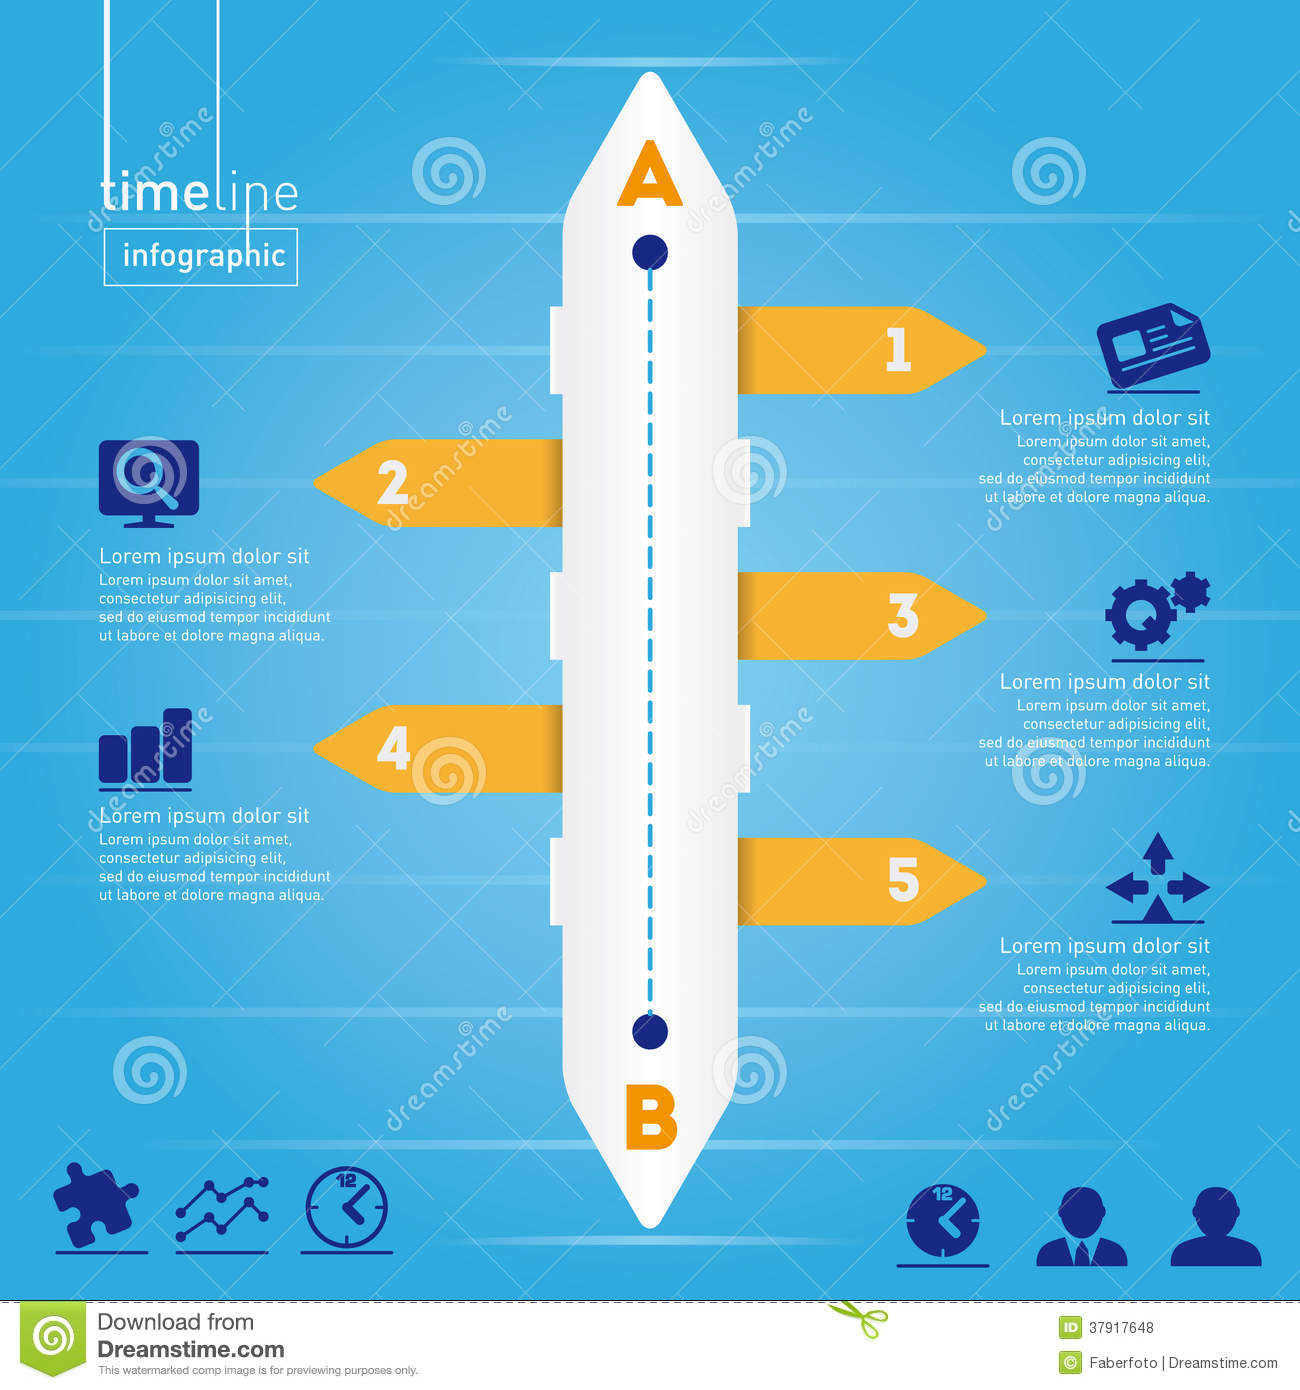 Business Infographic: Timeline style, with origina